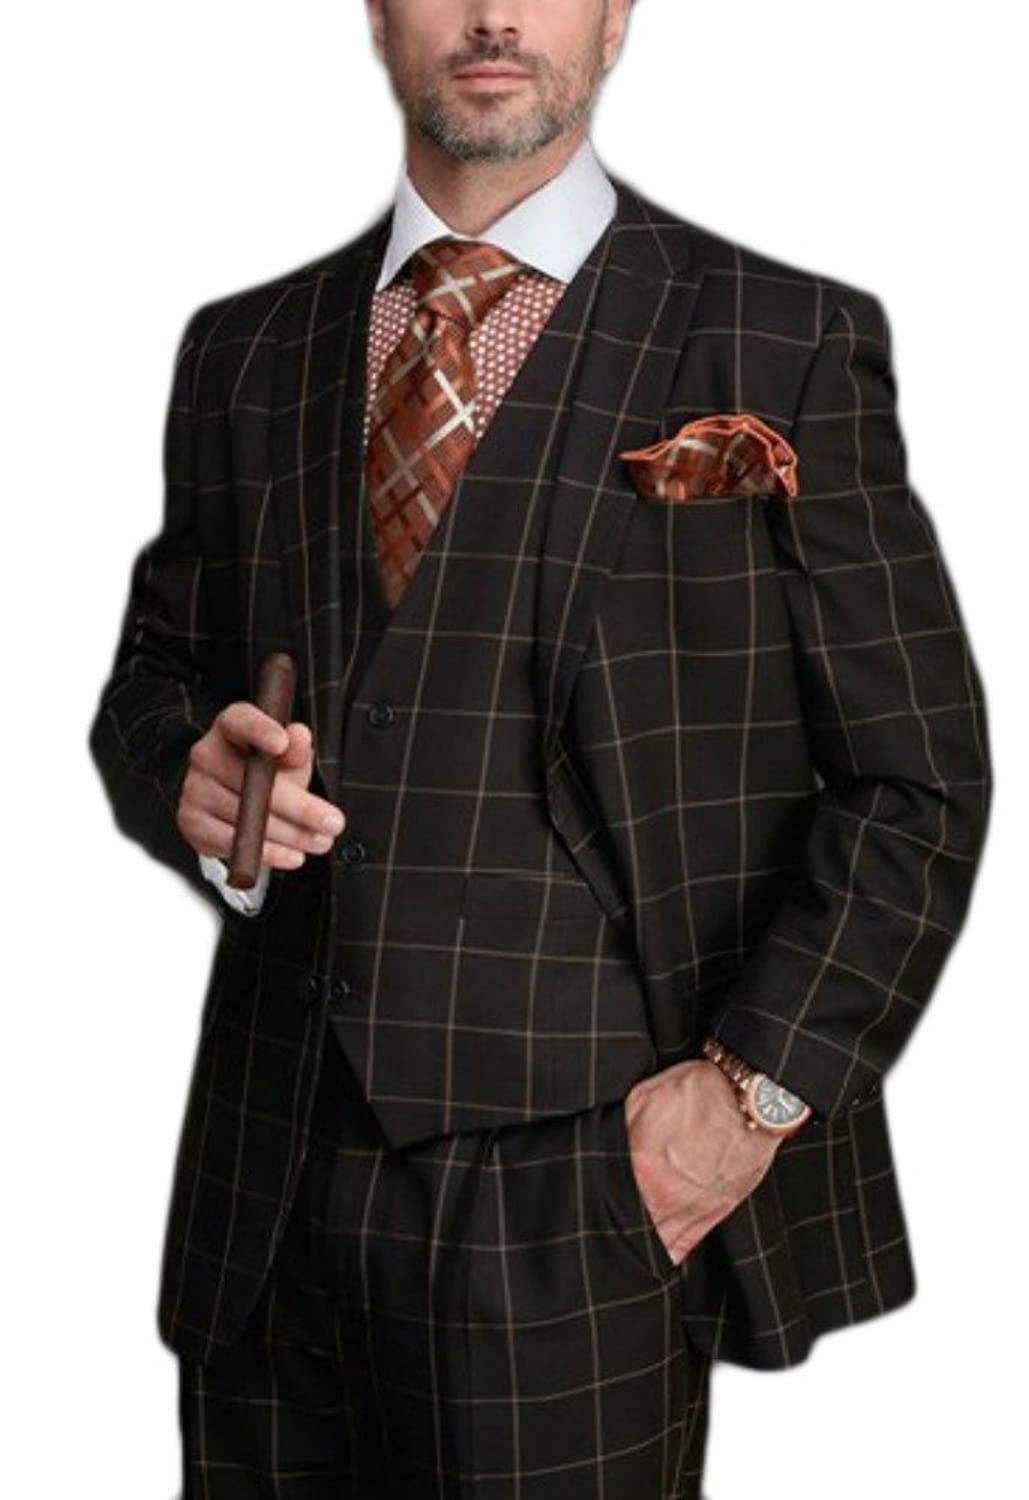 1920s Men's Suits History Steven Land Classic Fit Brown Windowpane Three Piece Suit With Peak Lapels $219.00 AT vintagedancer.com